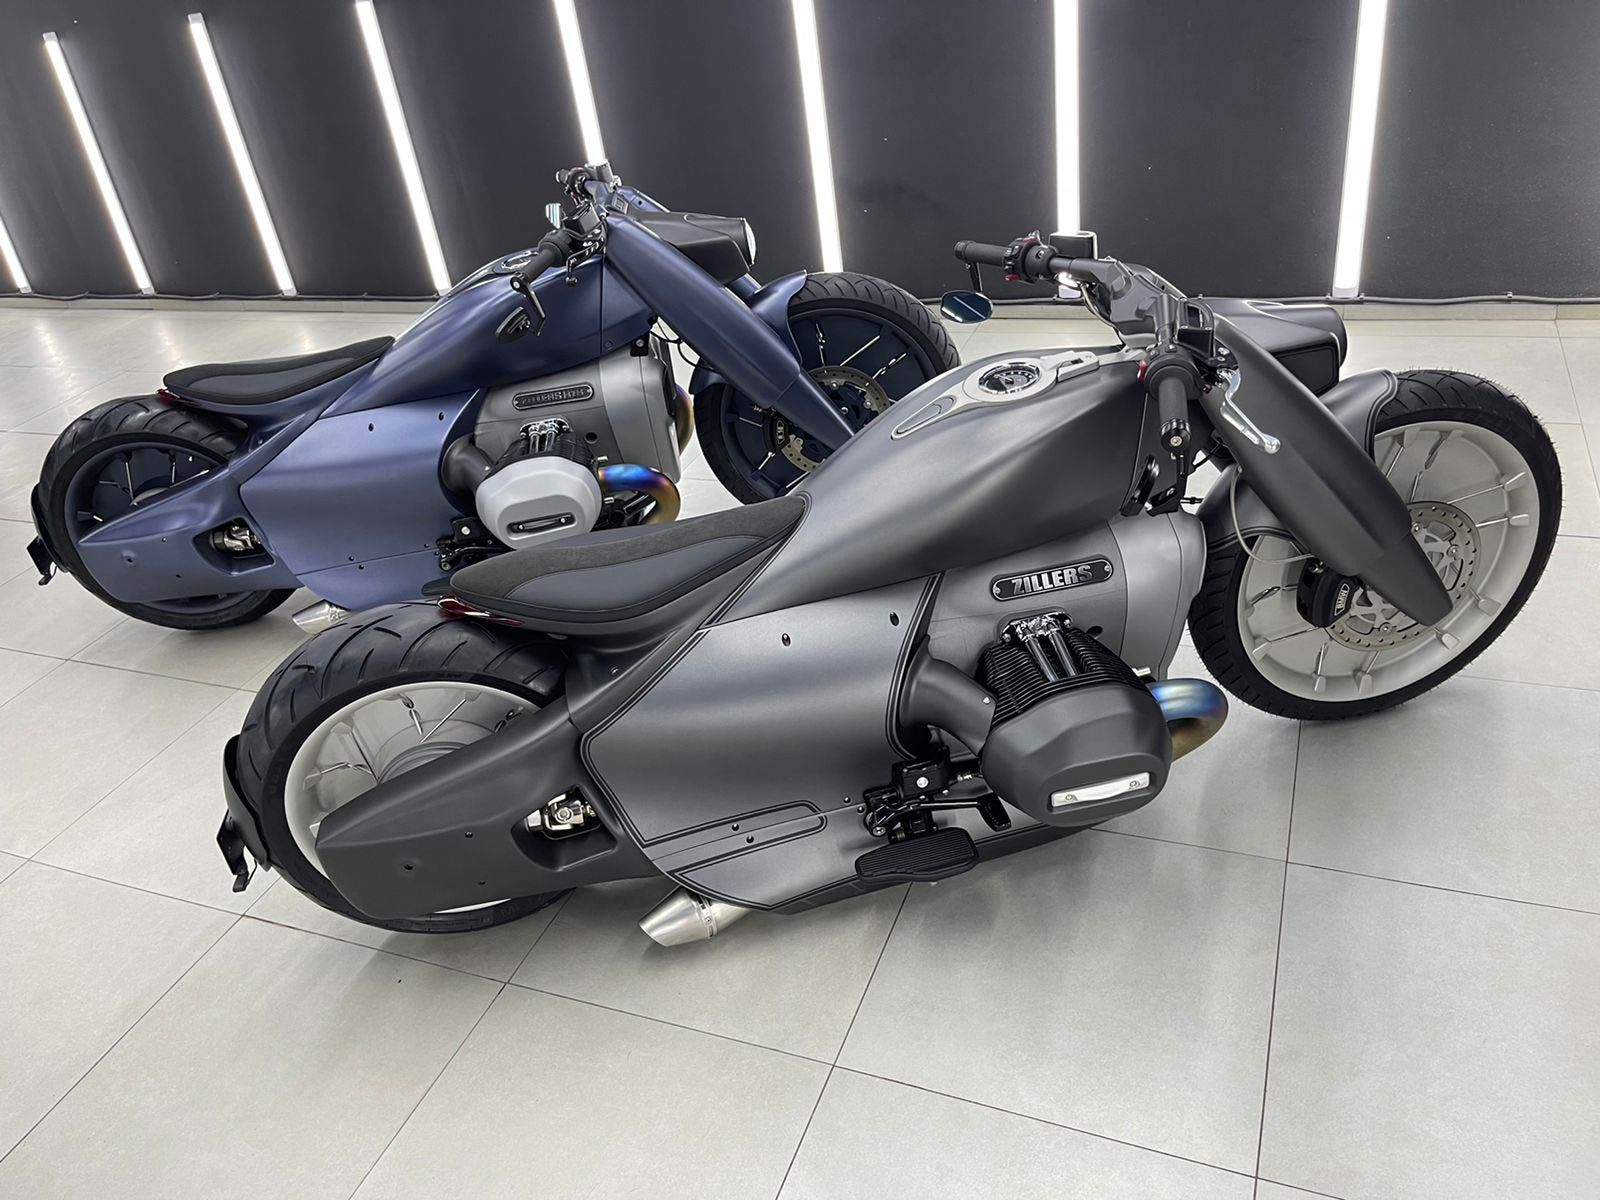 The Zillers R 18 is pretty unique. So unique, only 13 units will be released worldwide.